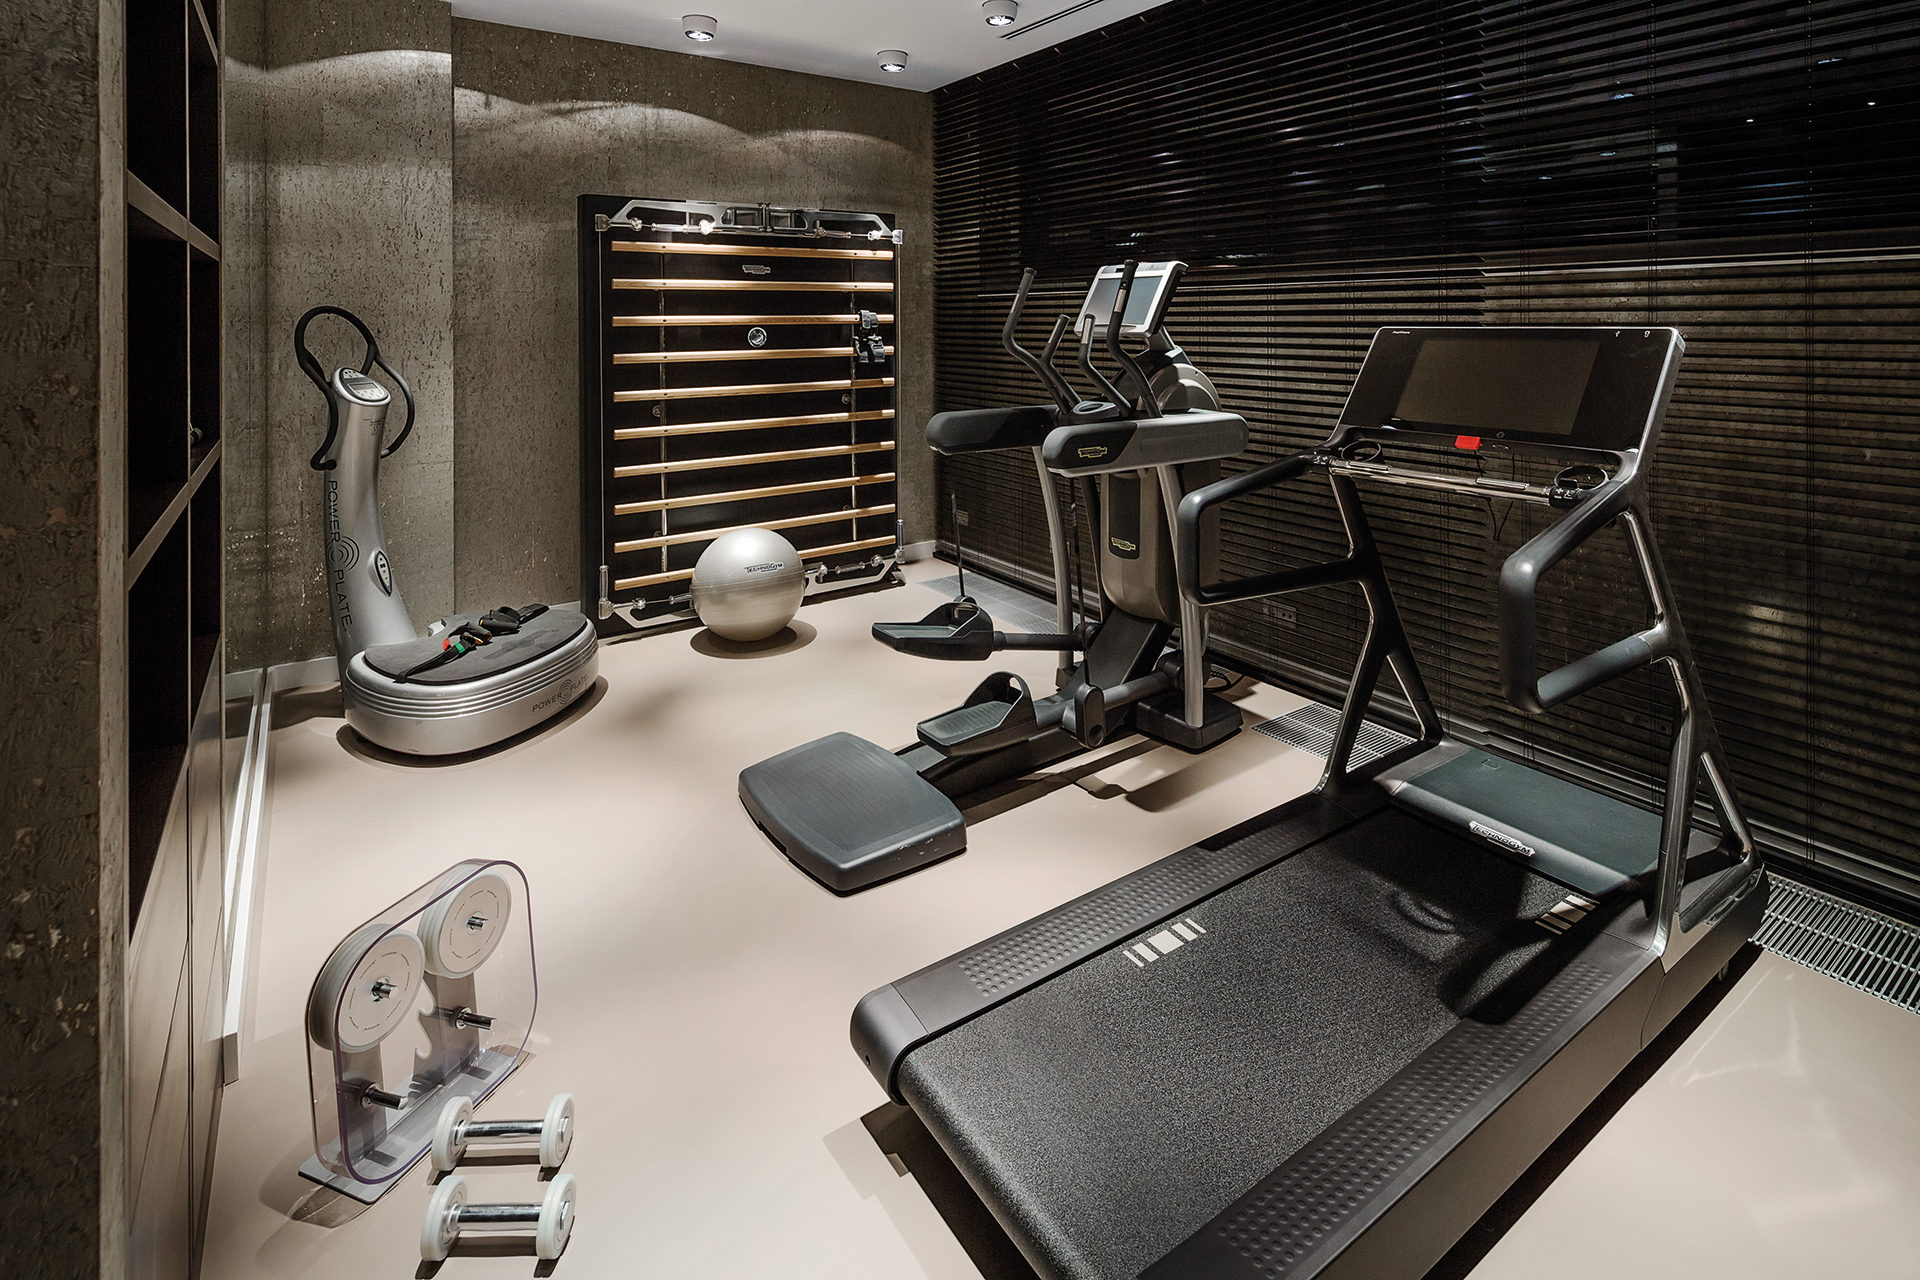 A personal gym with powerplate cross trainer and treadmill on a cast floor overlooking the natural grounds outside